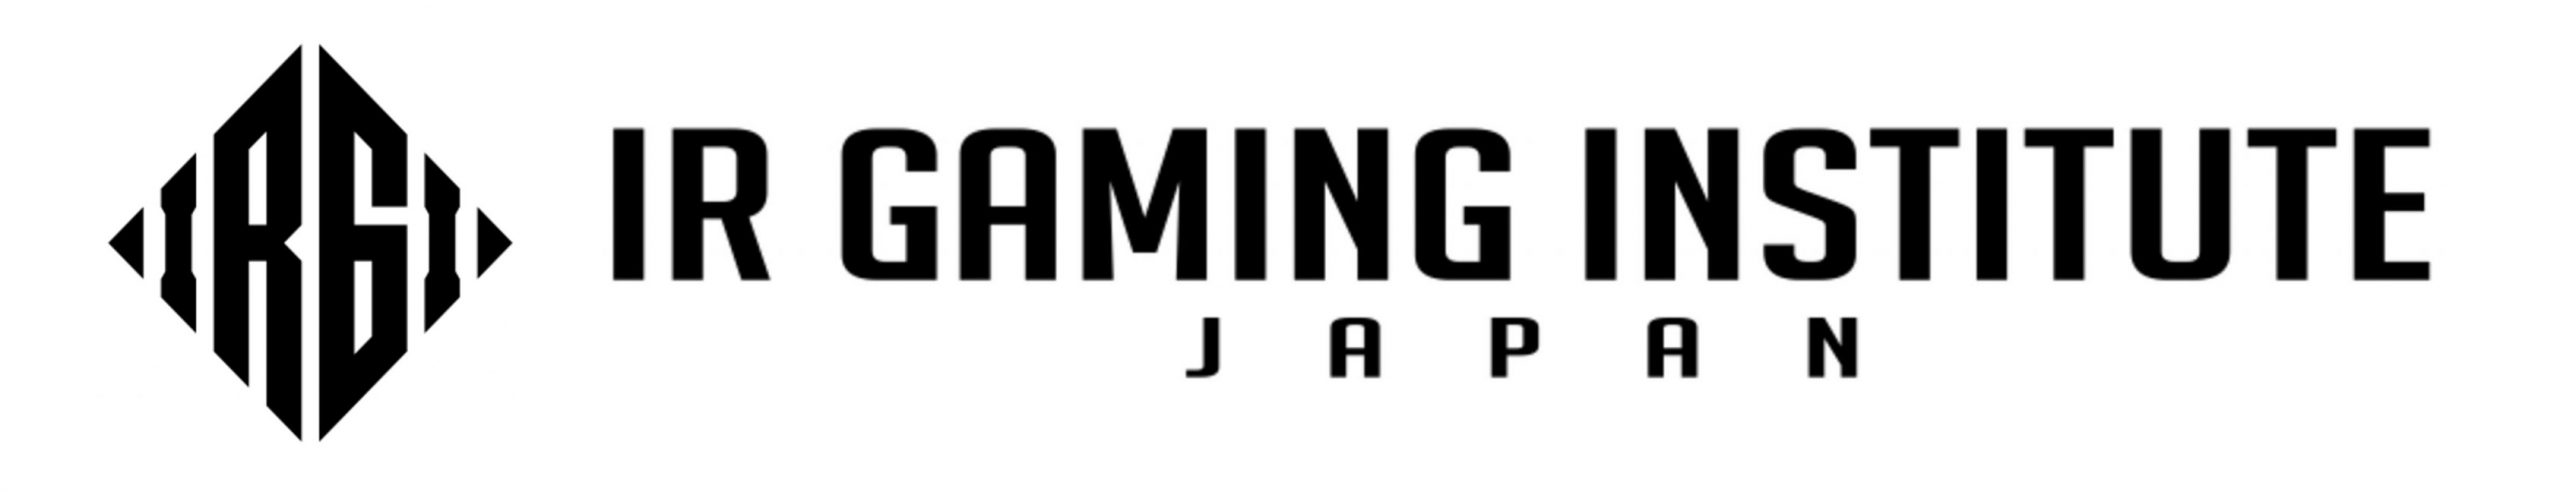 IR Gaming Institute Japan